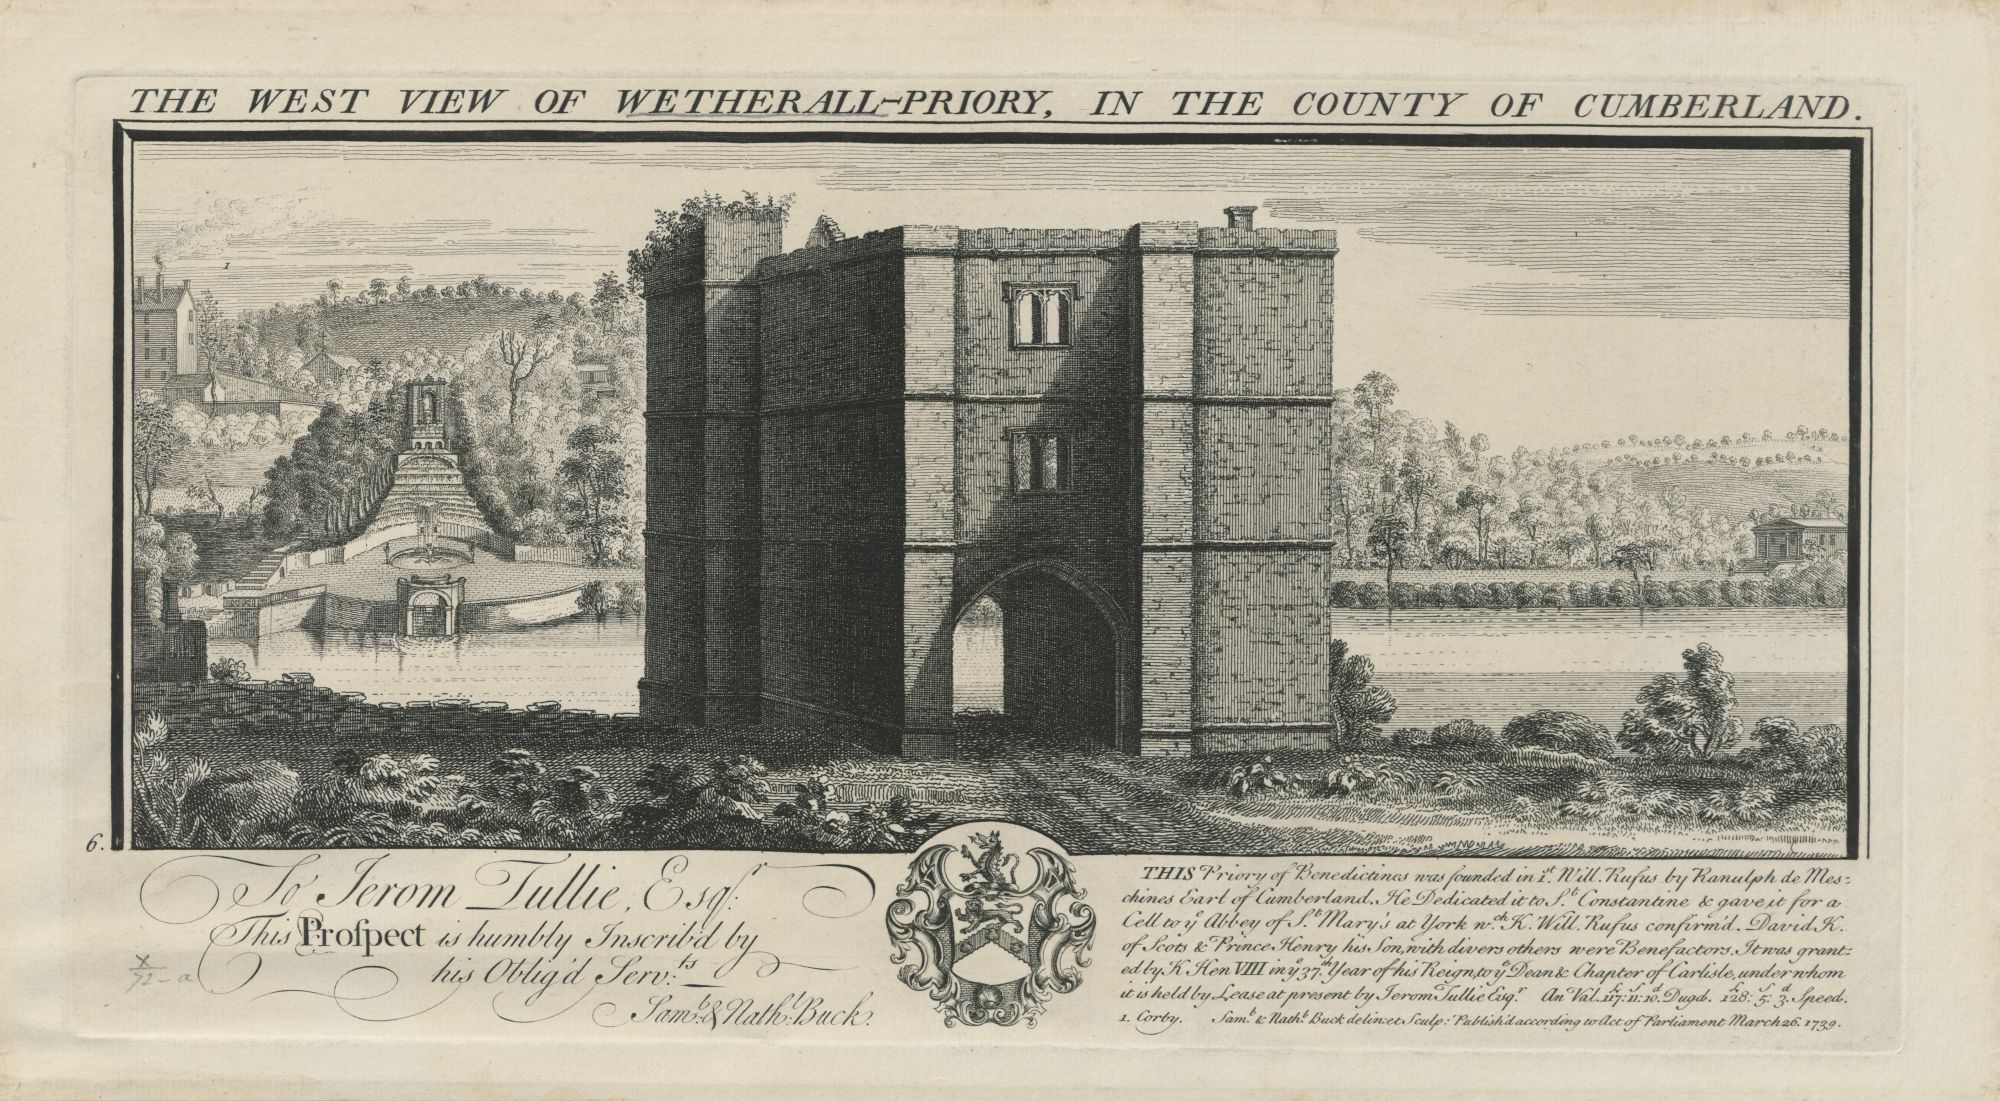 THE WEST VIEW OF WETHERALL-PRIORY, IN THE COUNTY OF CUMBERLAND